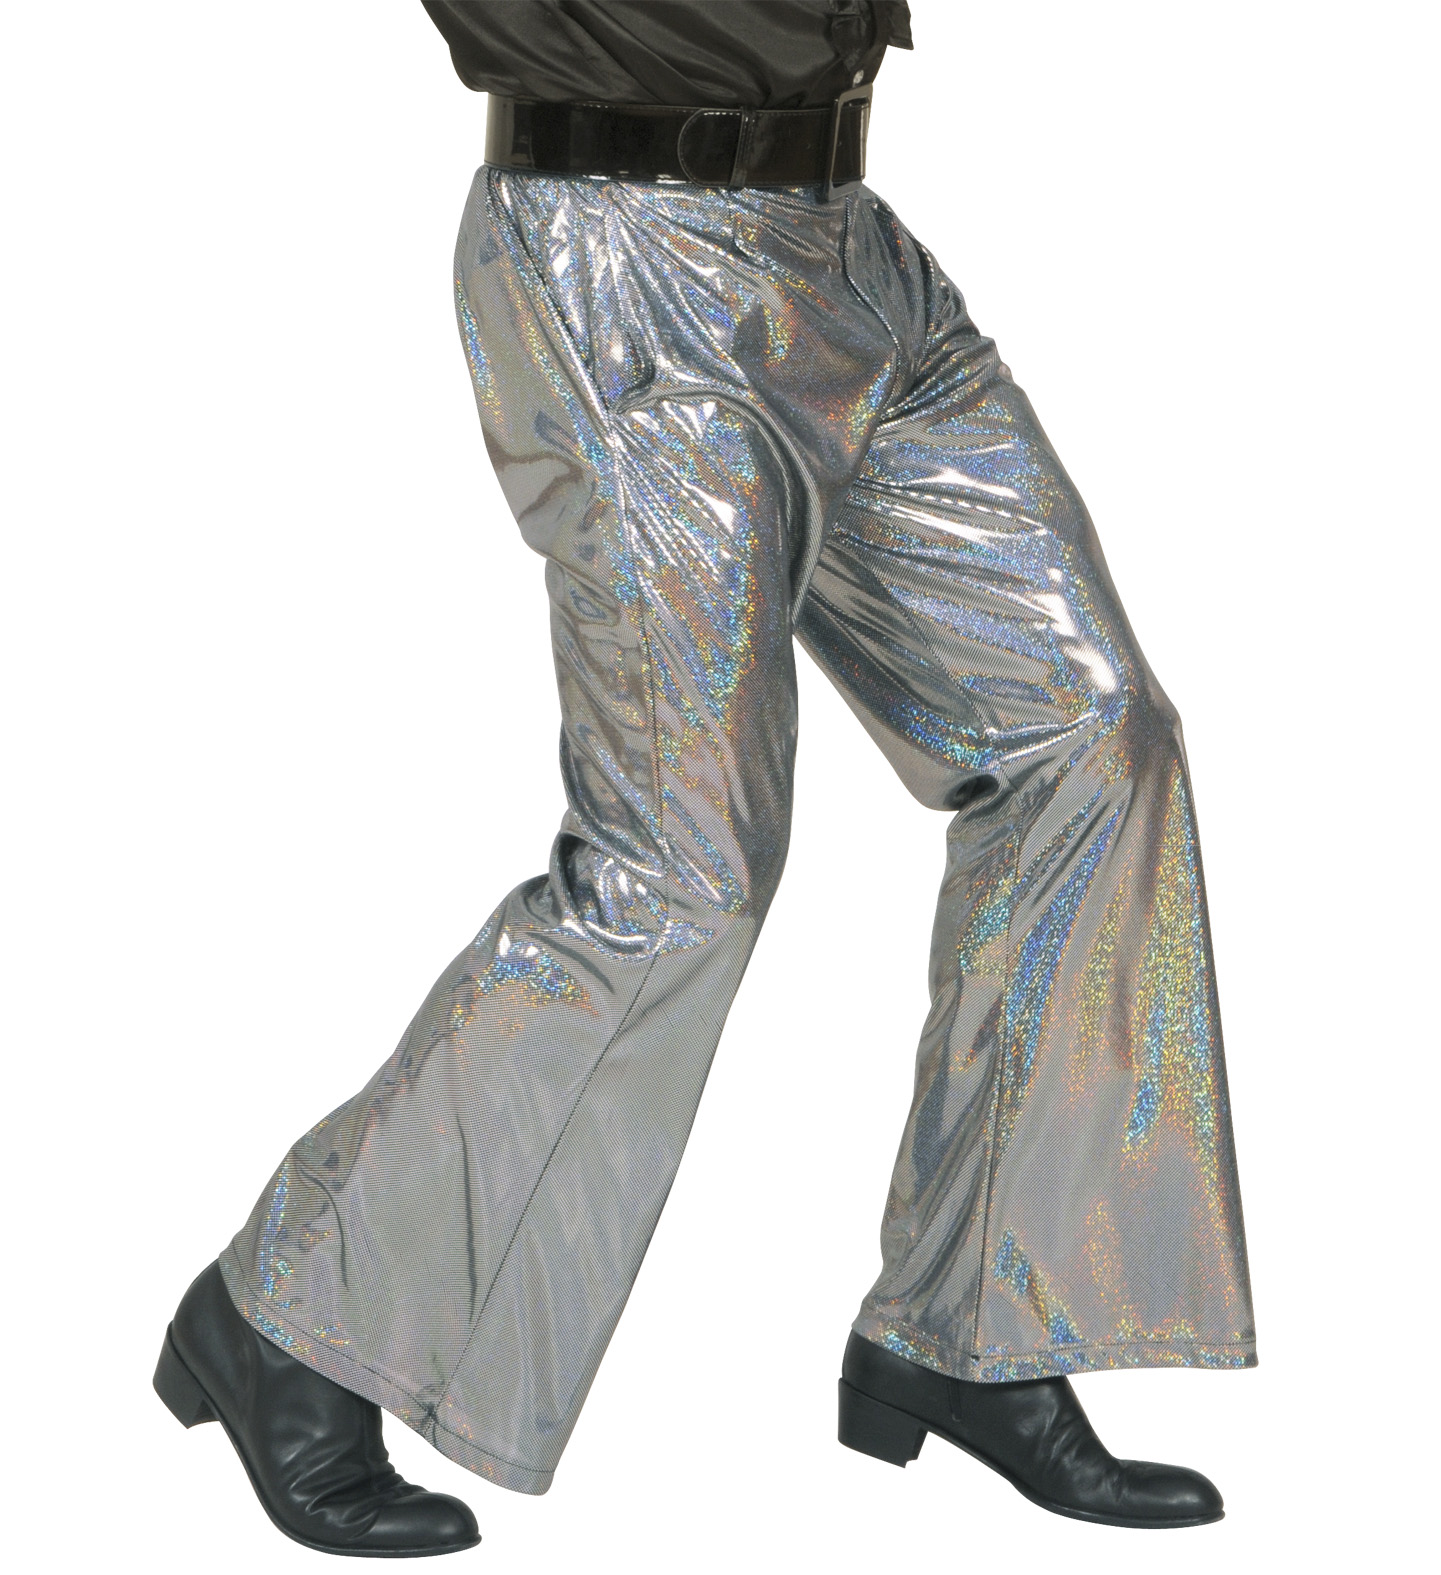 Holographic Sequin Pants - Silver Trouser Pants 70s Fancy Dress